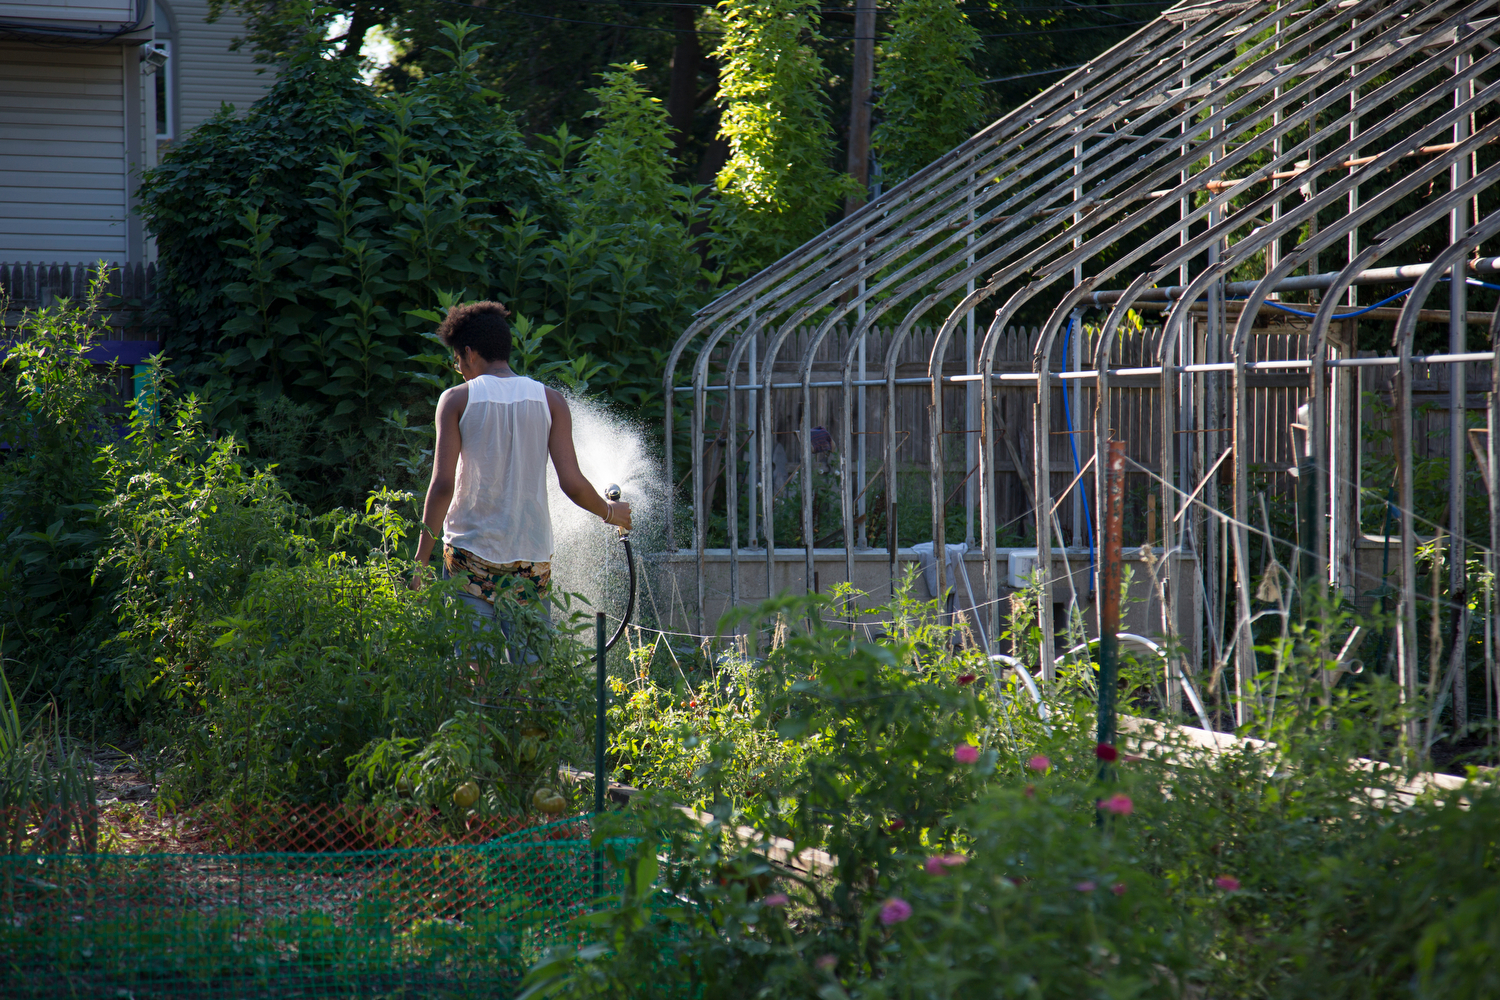 Jamison Clark, 16, waters the plants at the Seedfolk City Farm before the open house, Rochester, N.Y., Aug. 7, 2015.